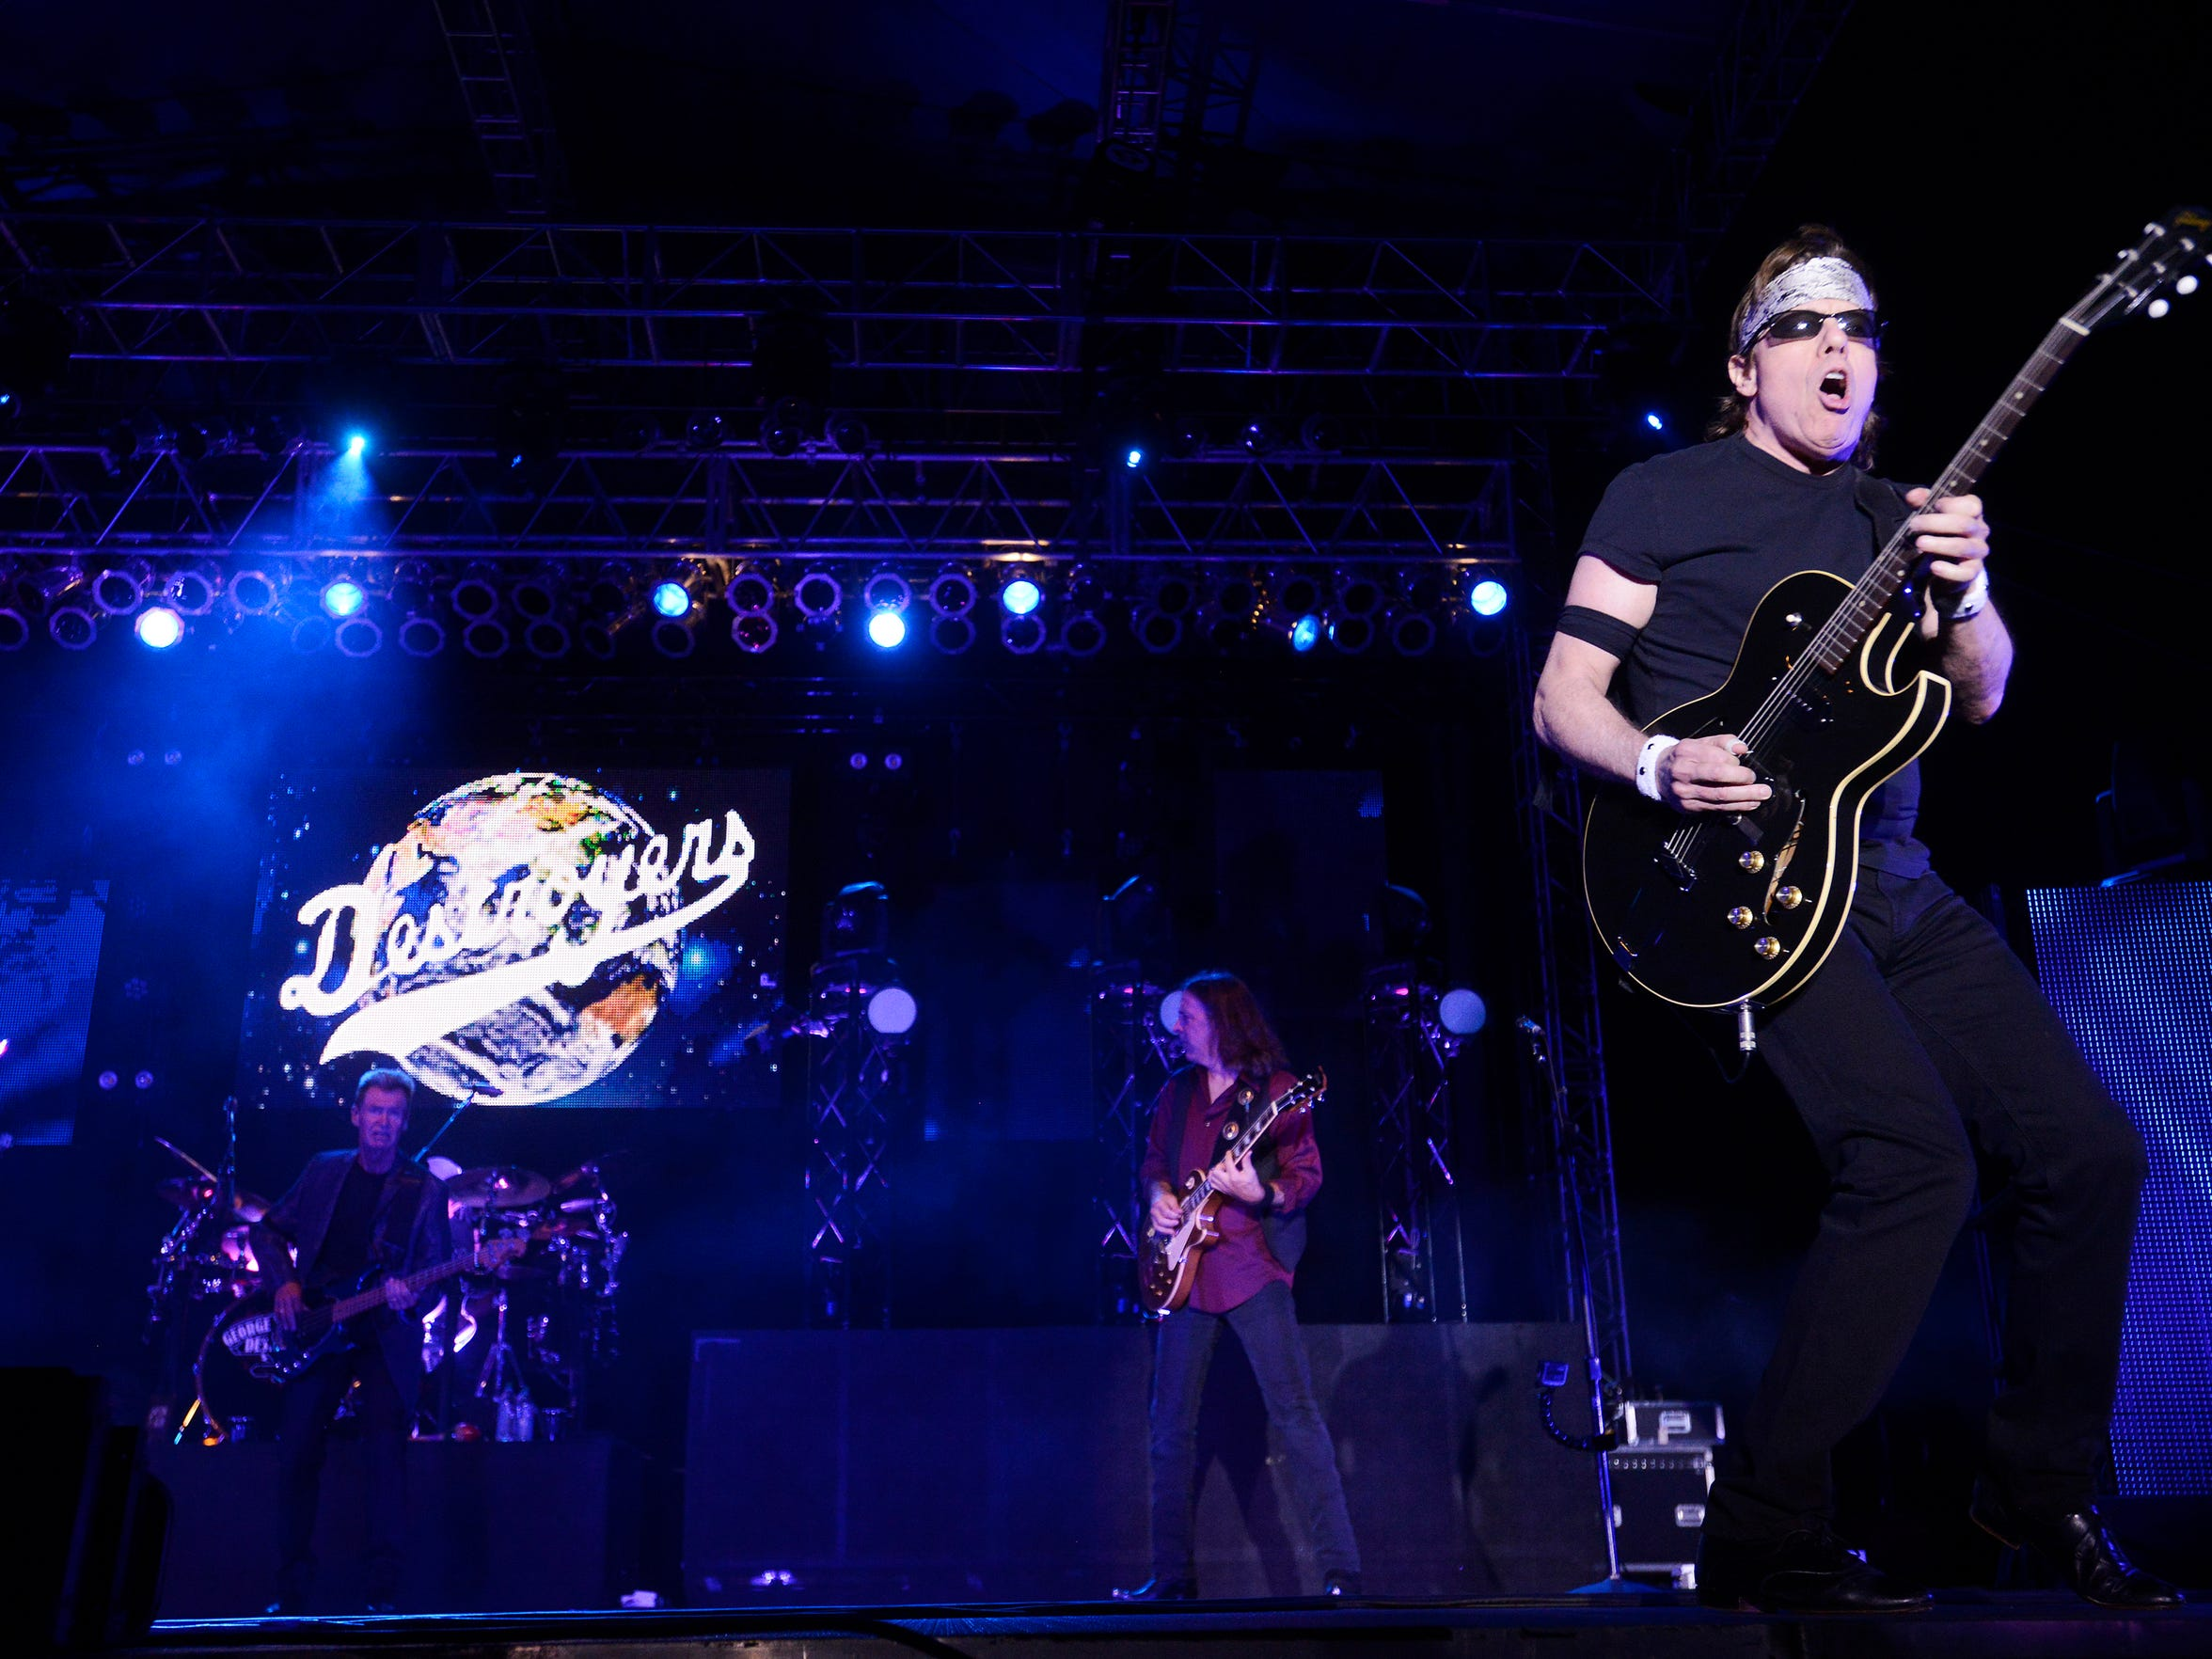 George Thorogood and The Destroyers performed at JazzFest in 2014.